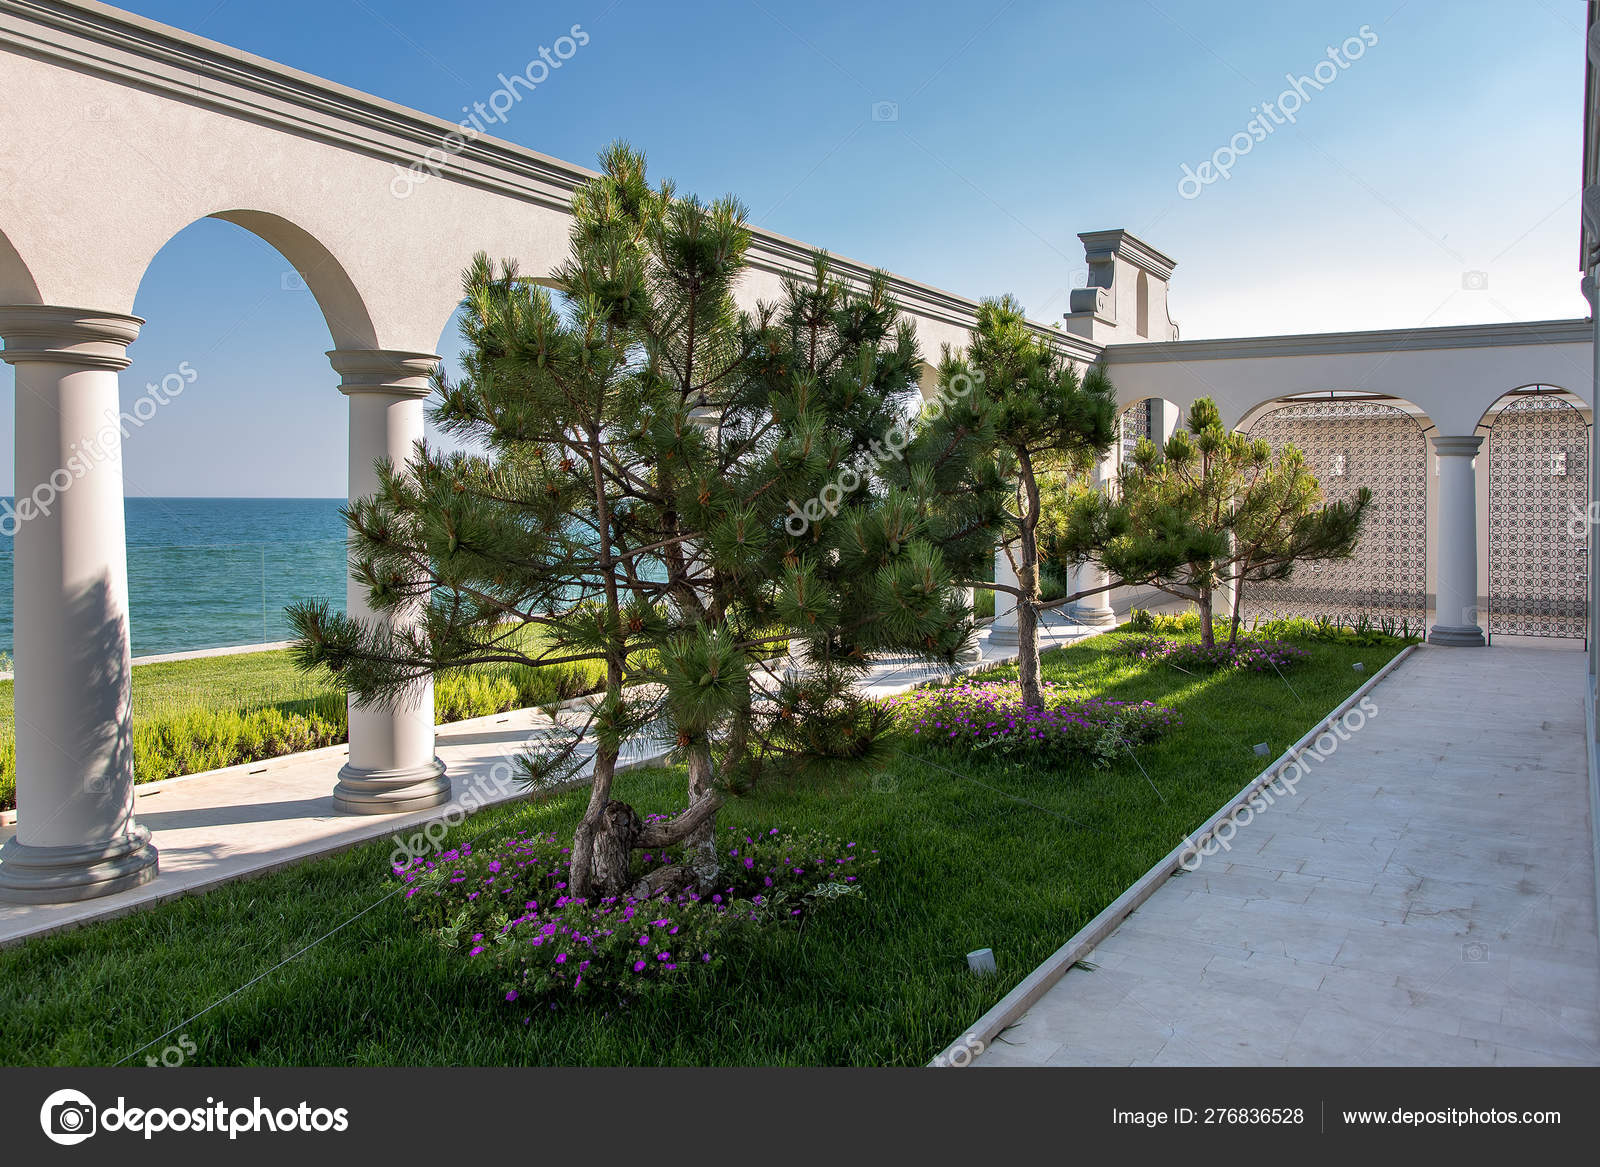 Terrace Flower Bed Green Lawn Pine Trees Surrounded Architectural